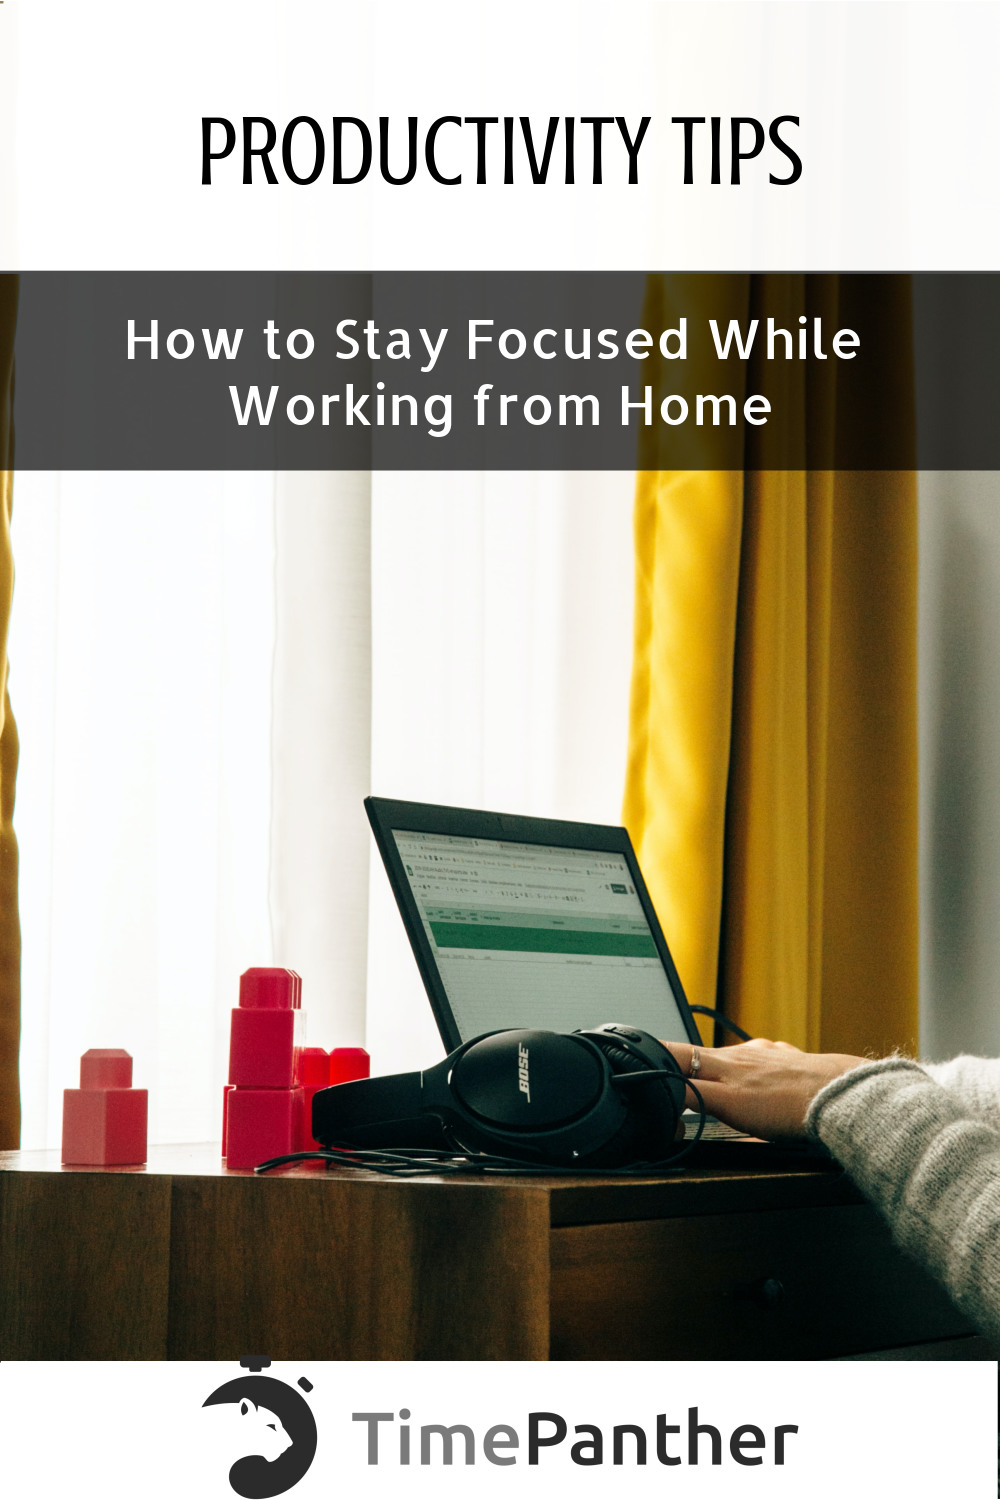 Productivity Tips: How to stay focused while working from home. Time Panther. Photo description: hands typing on a laptop. Duplo blocks and curtains in the background. Photo by Charles Deluvio on Unsplash